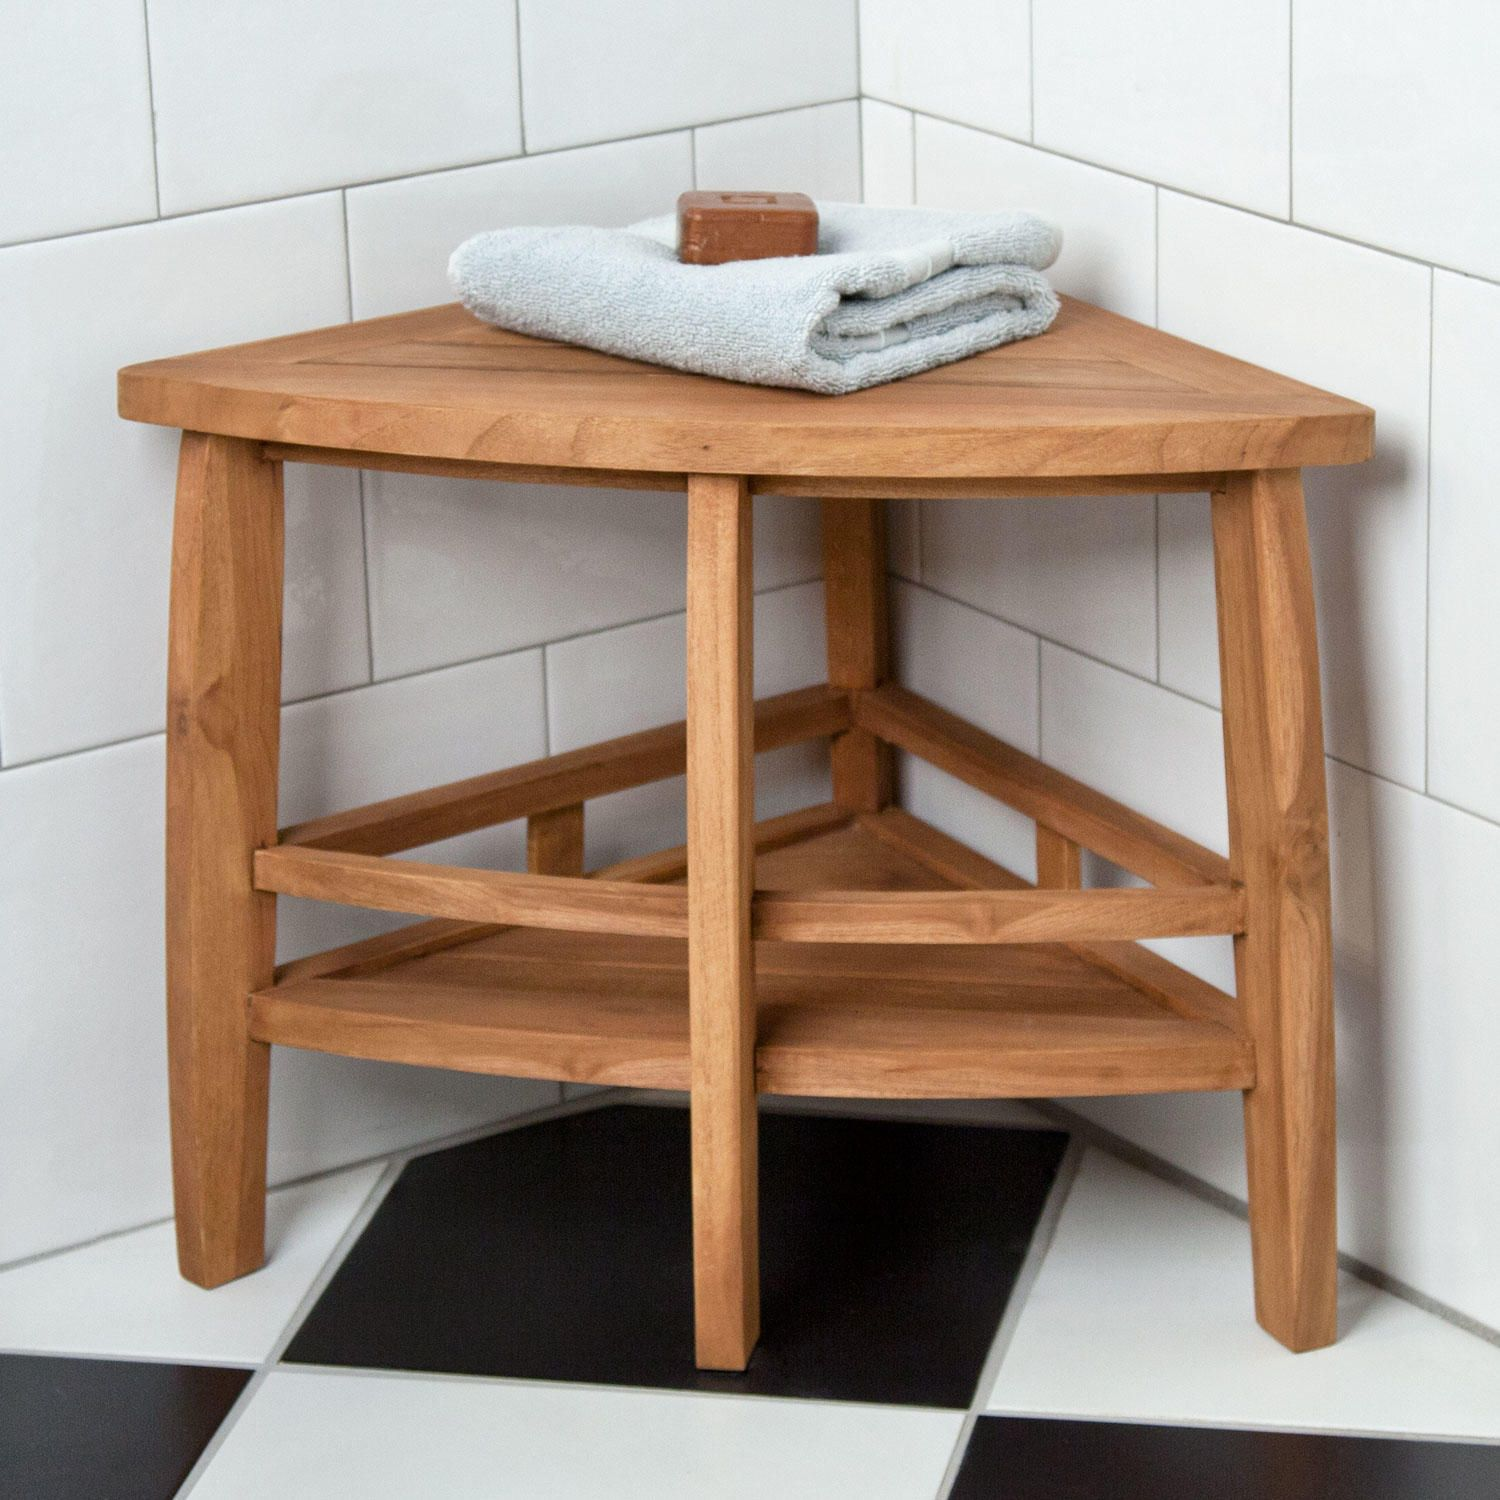 Teak Corner Shower Stool | Shower seat, Bathroom accessories and Teak